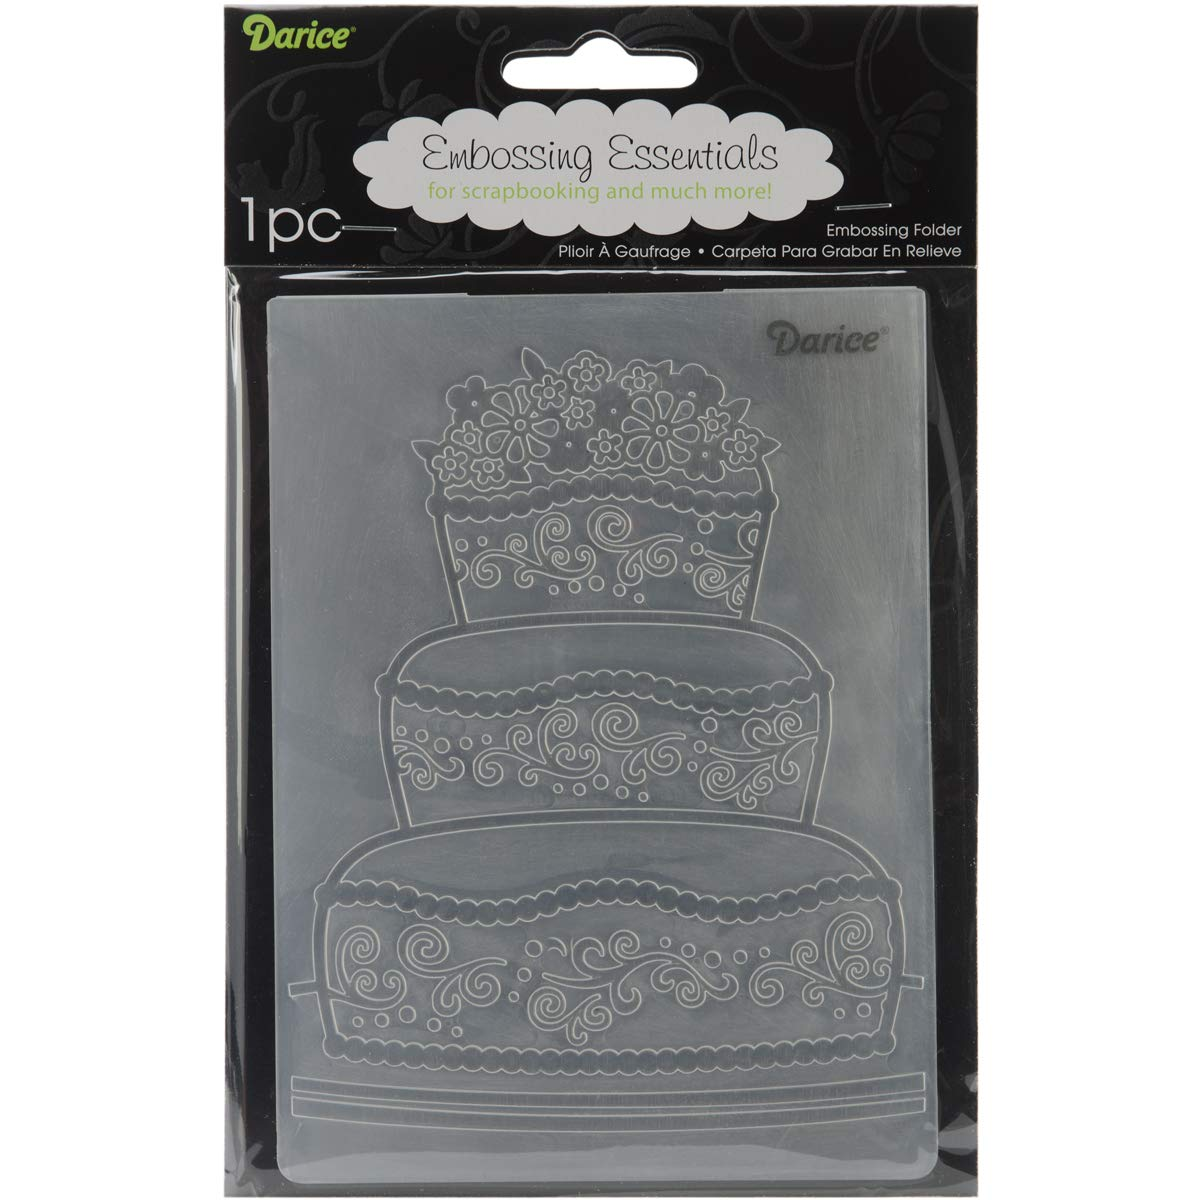 Darice Embossing Folder Fancy Cake 4.25 X 5.75 Inches (12 Pack)